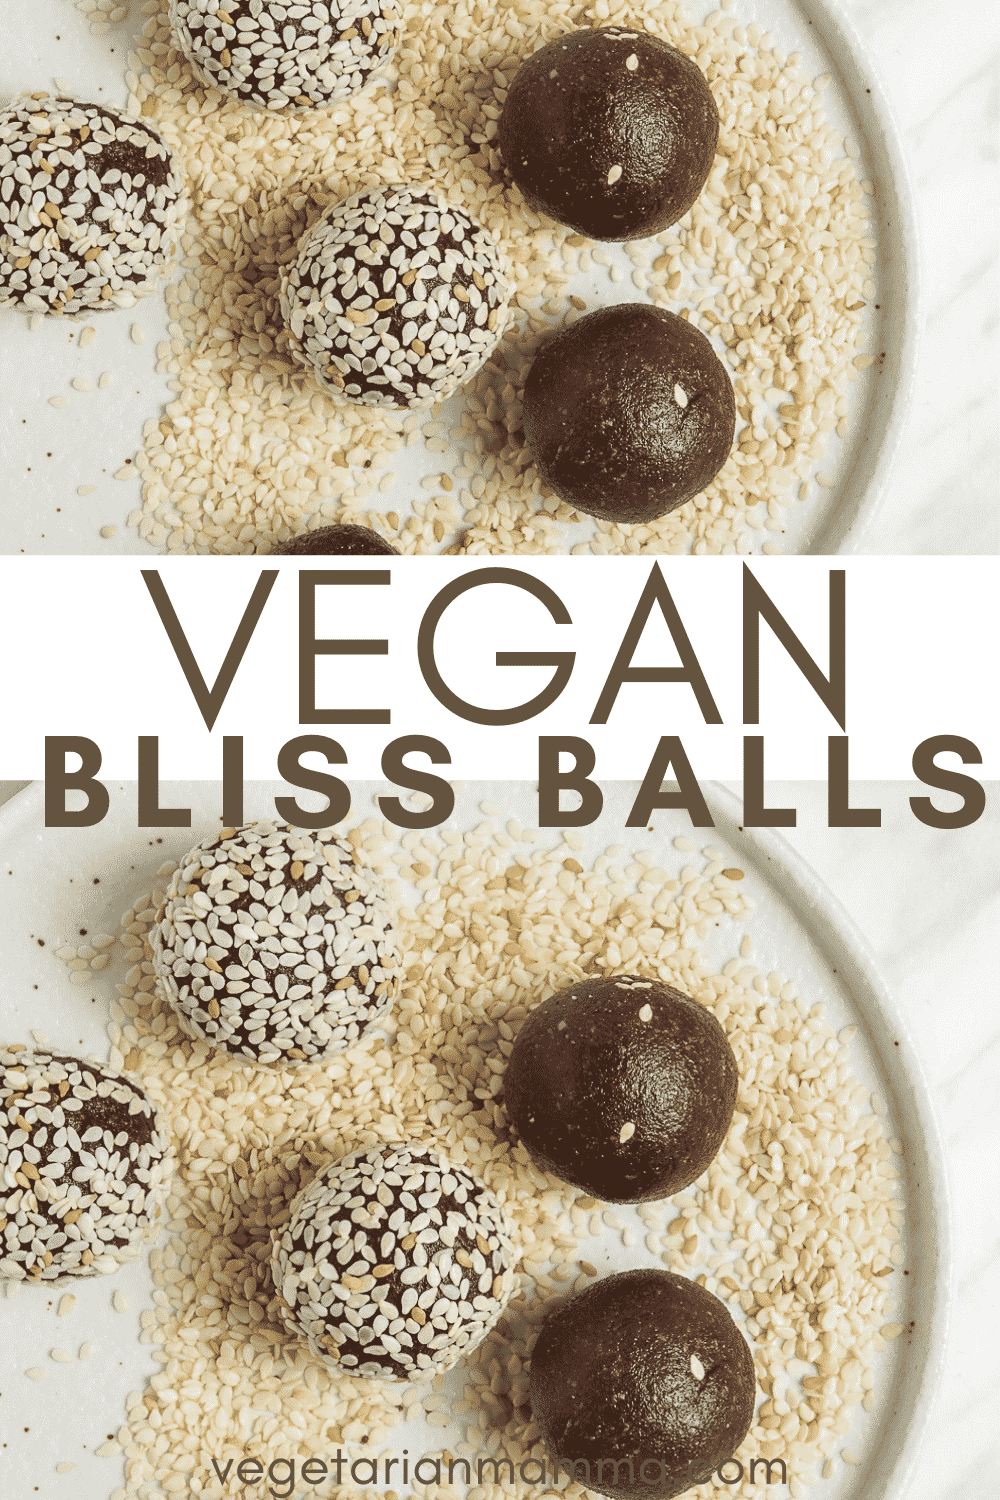 Bliss Balls are so decadent you'll forget they're healthy, too! These vegan chocolate tahini balls are covered in sesame seeds for the best no-bake dessert, afternoon snack, or even breakfast on-the-go. #vegansnack #energyballs